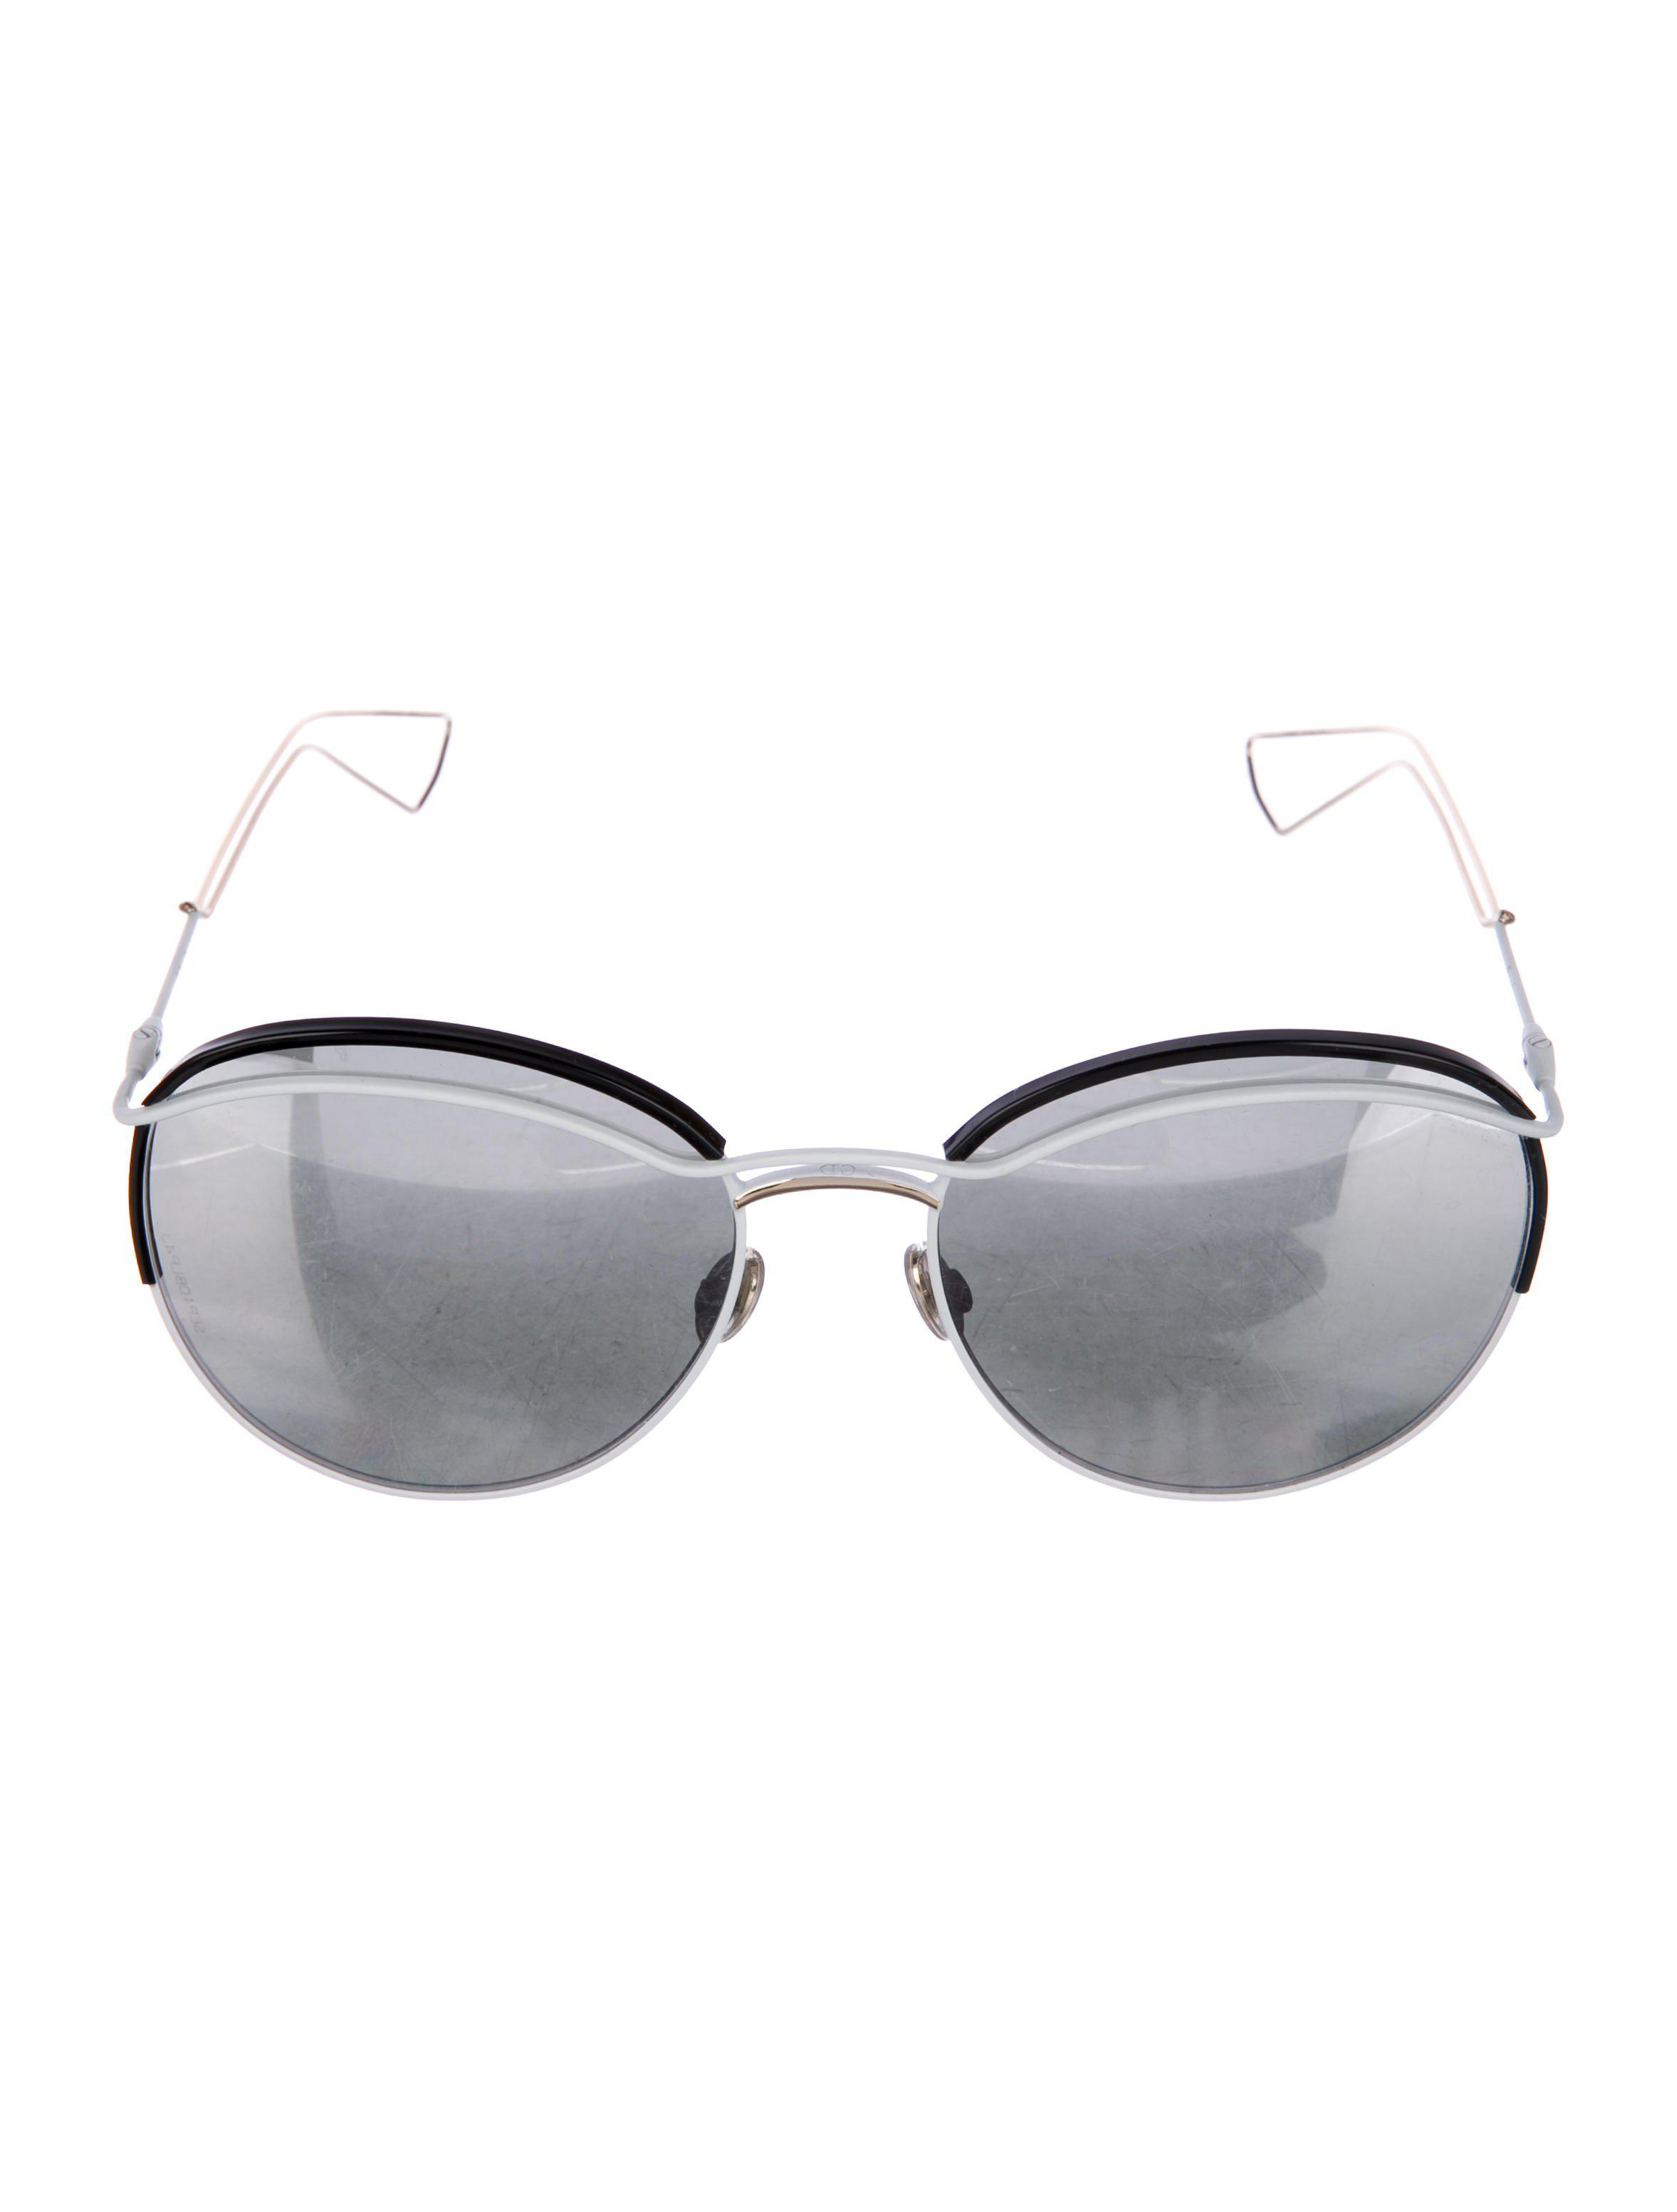 a96362b3bd8 Lyst - Dior Dioround Mirrored Sunglasses White in Metallic